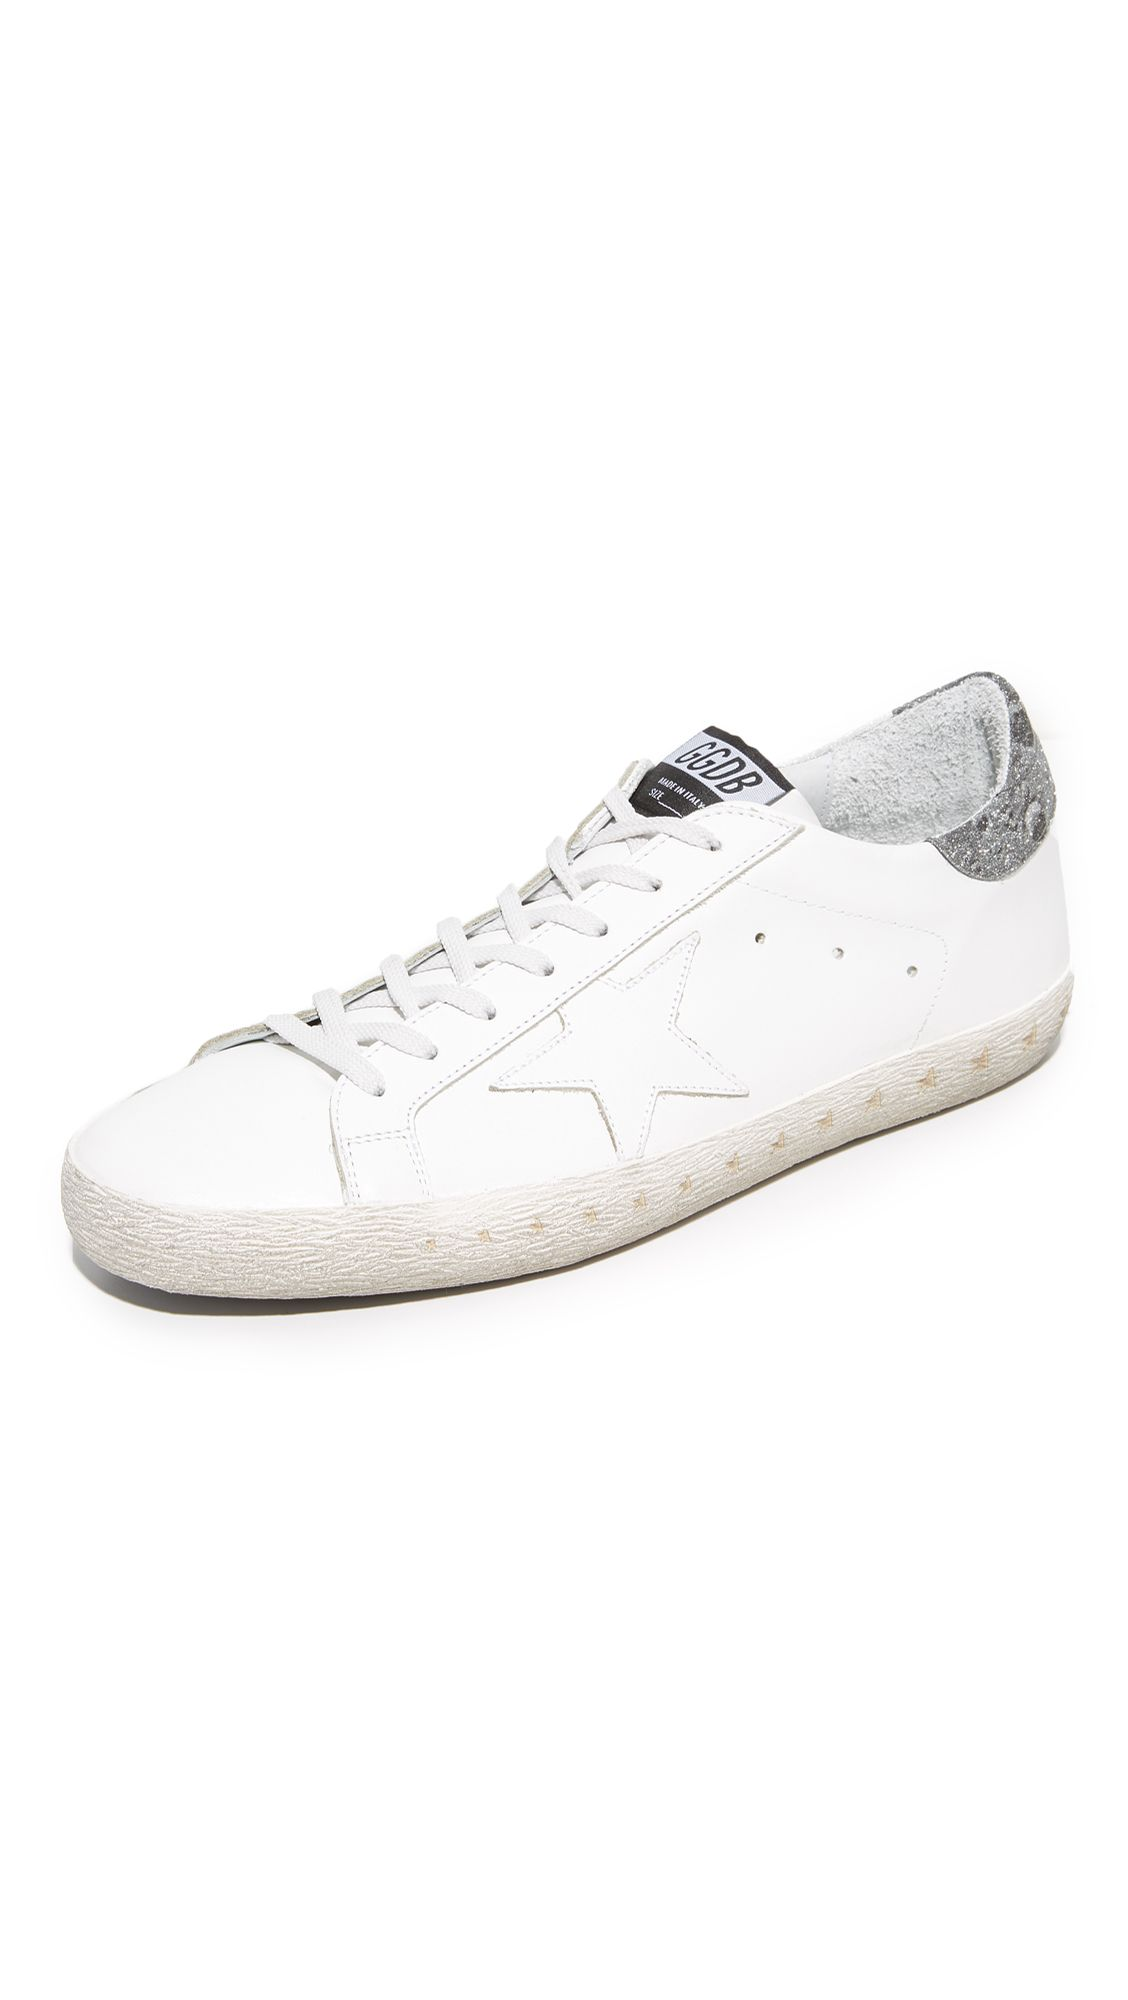 8d1a5000dee60 GOLDEN GOOSE Anniversary Superstar Sneakers.  goldengoose  shoes  sneakers